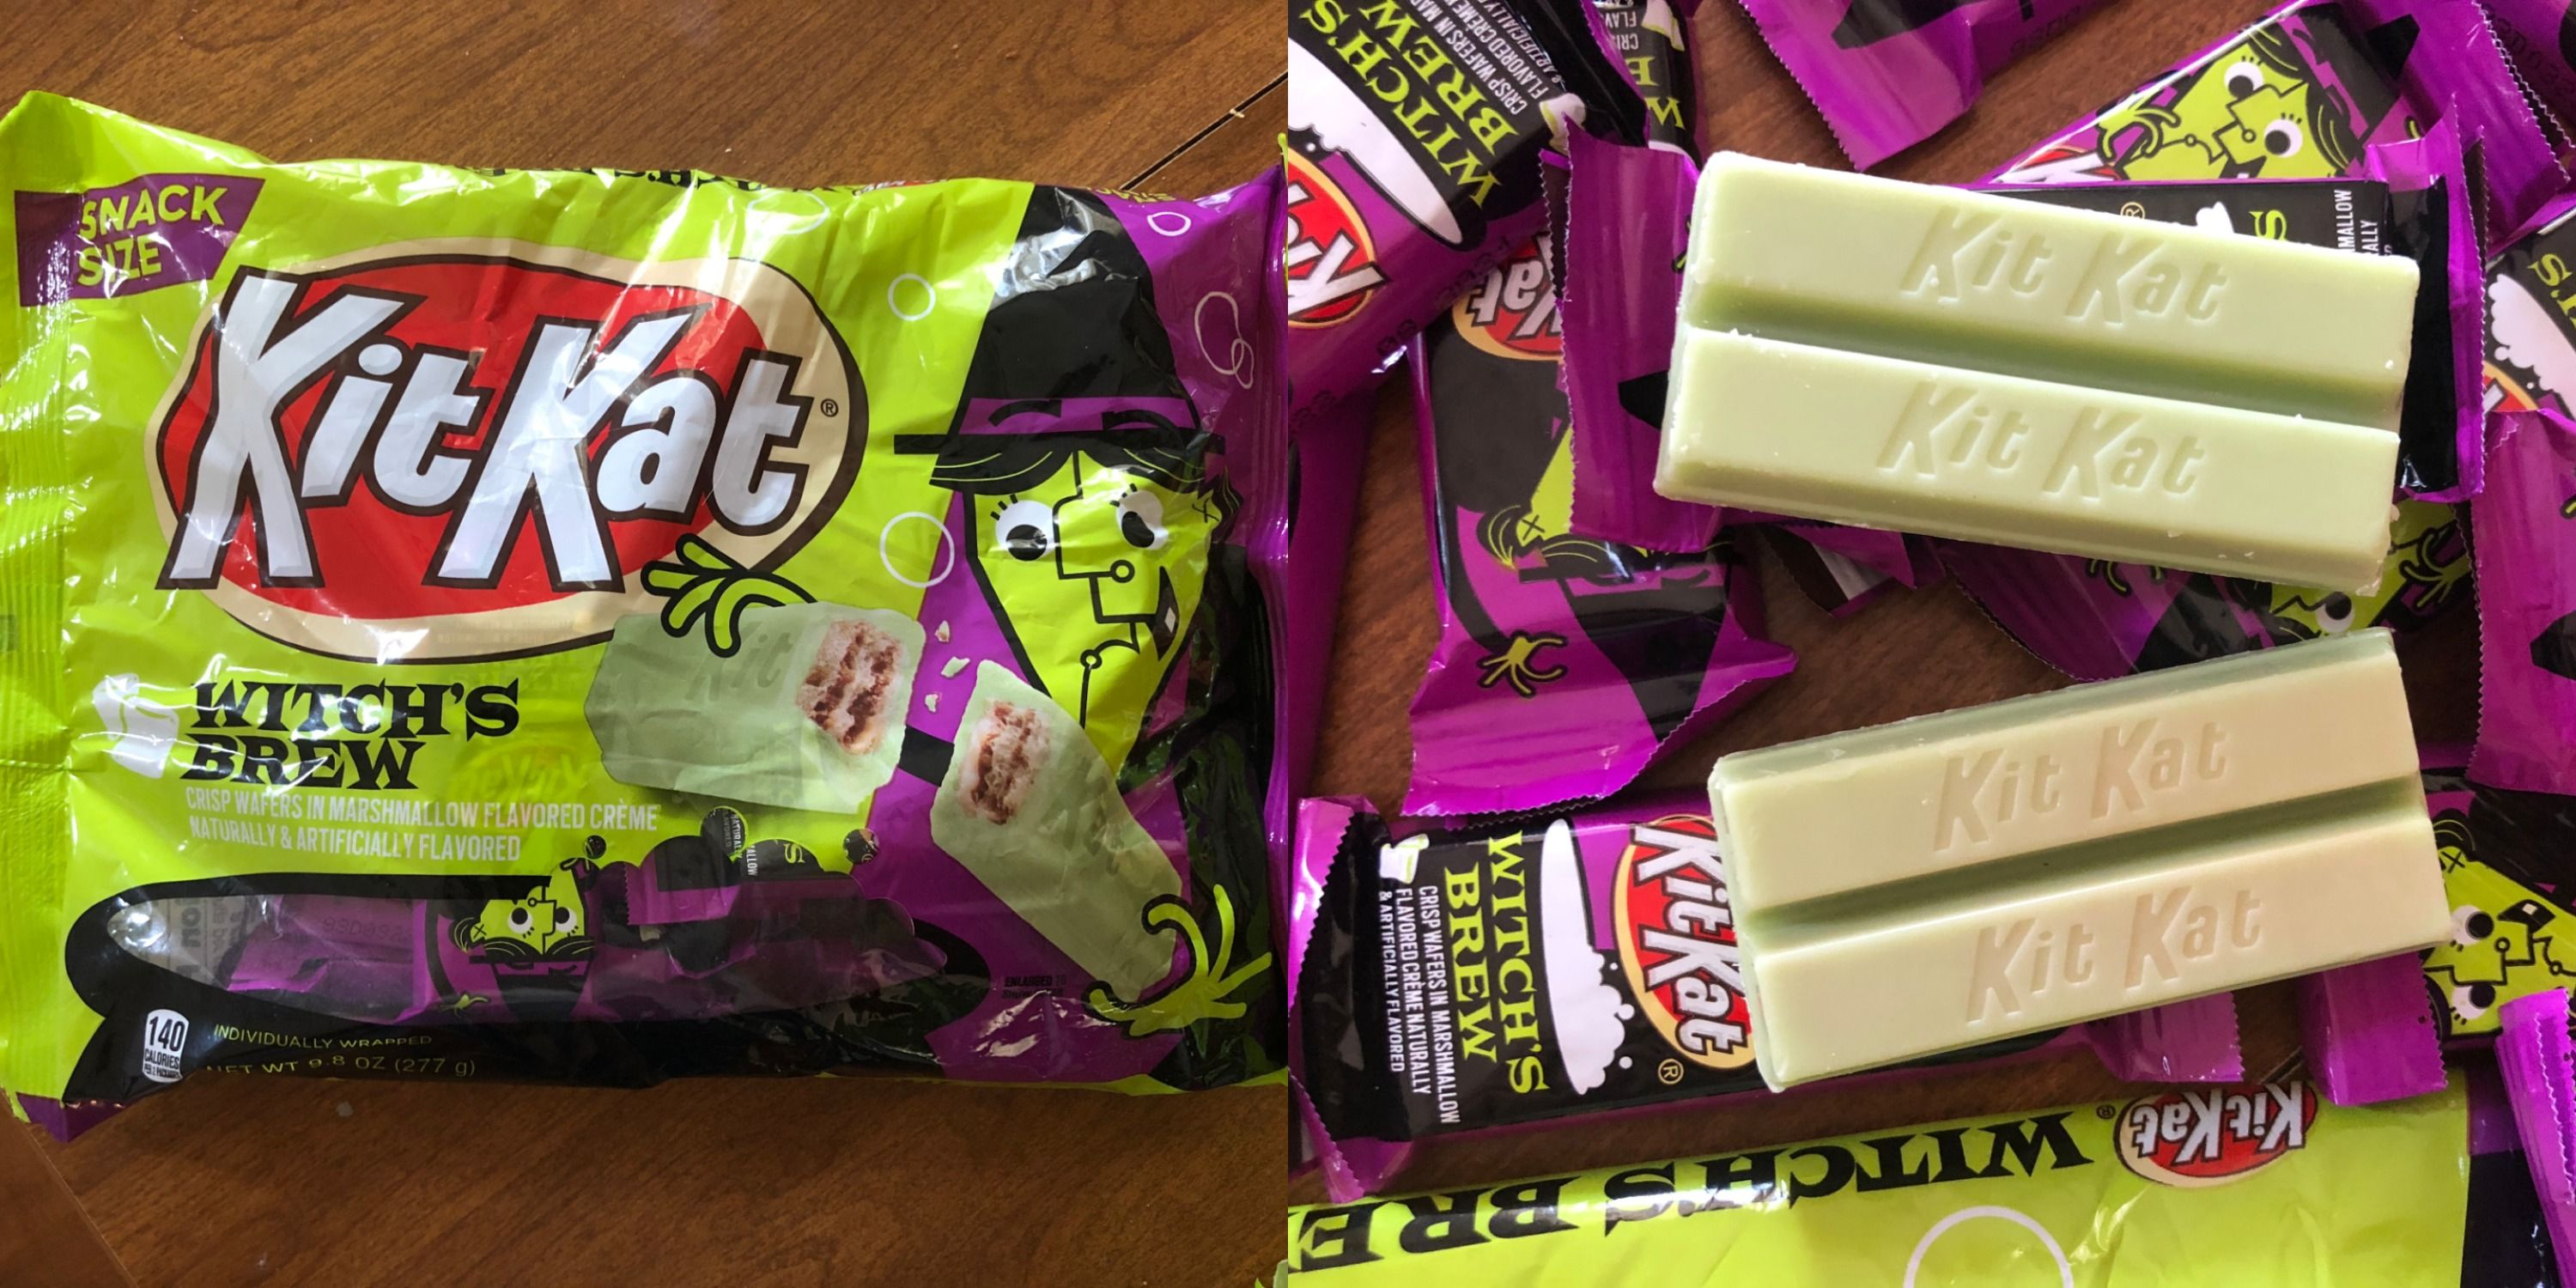 The Witches Brew Halloween 2020 Marshmallow Witches Brew Kit Kats Are Coming From Halloween 2020